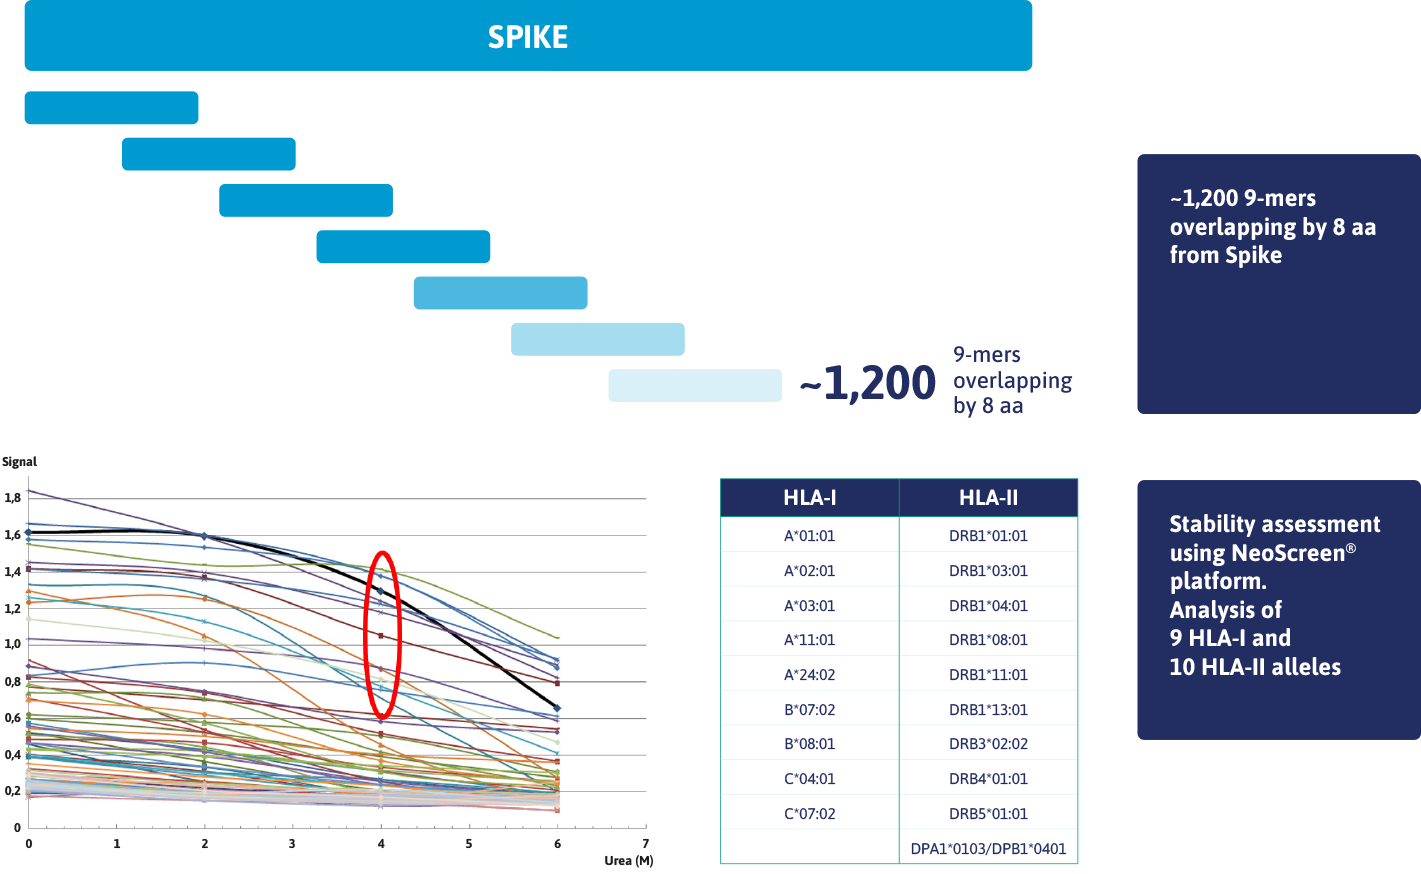 Stability Assessment Spike